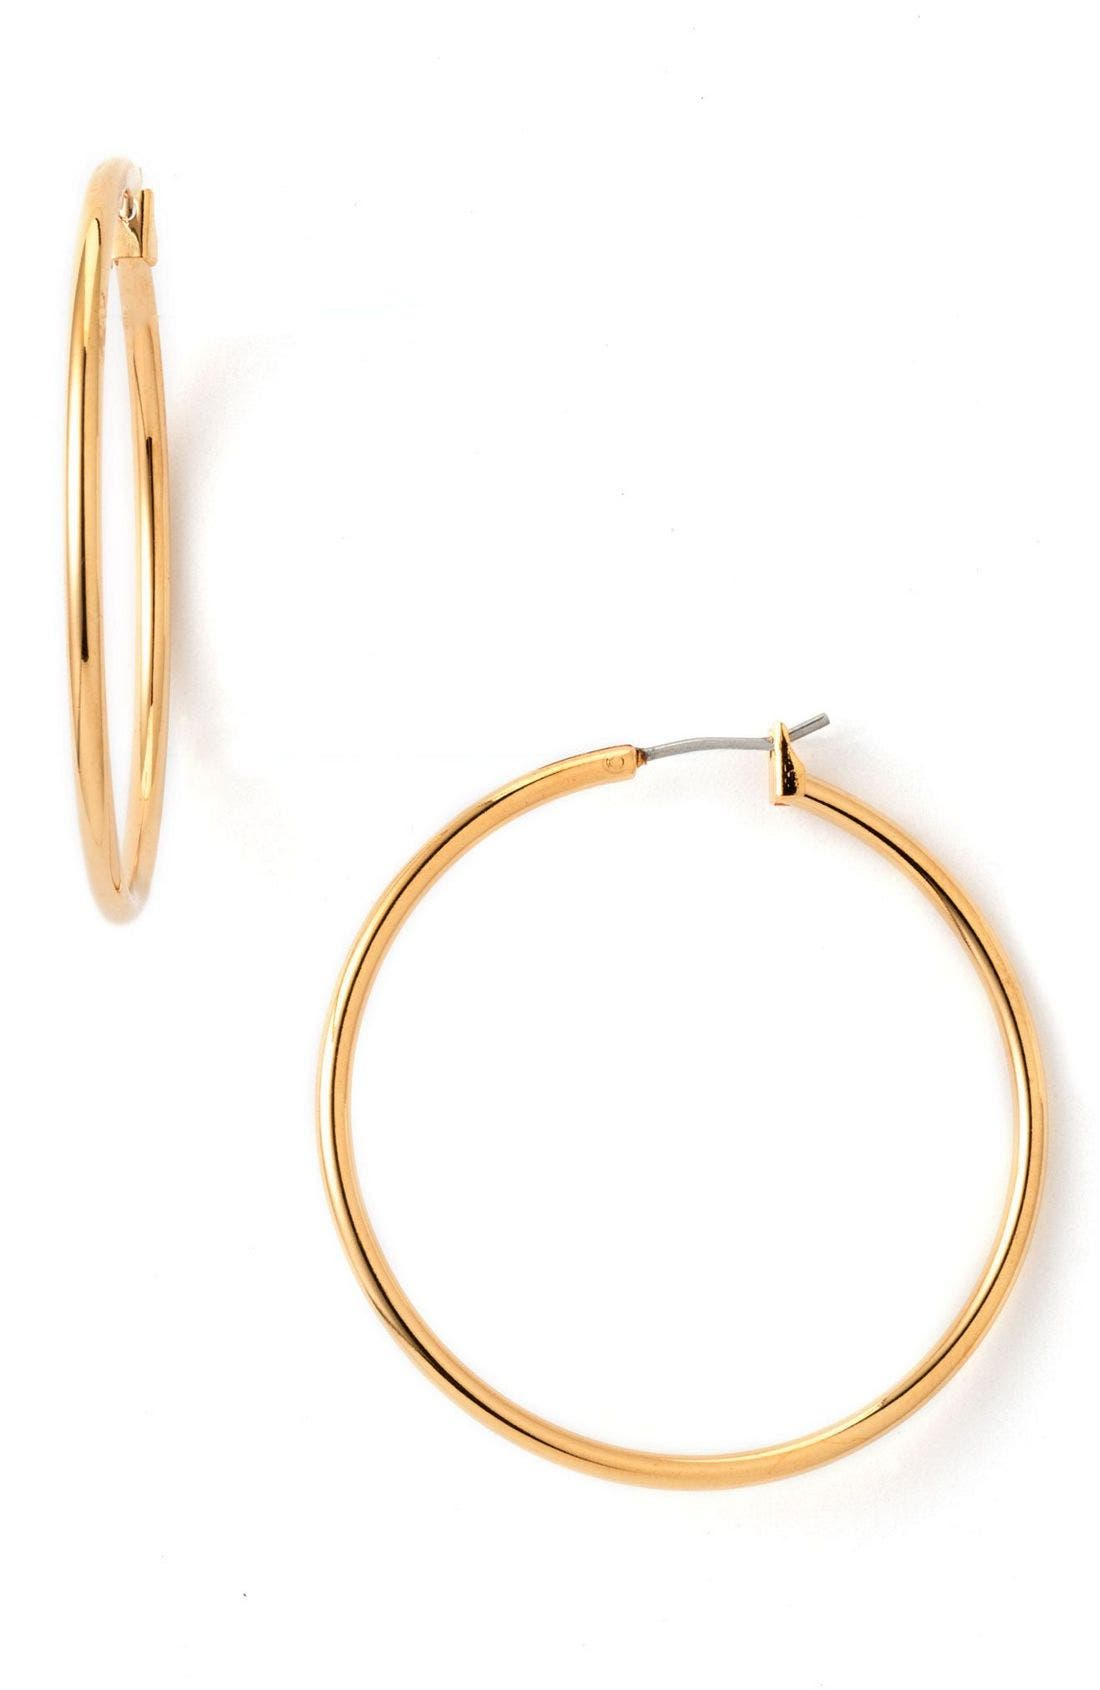 Main Image - Nordstrom Classic Hoop Earrings (Nordstrom Exclusive)